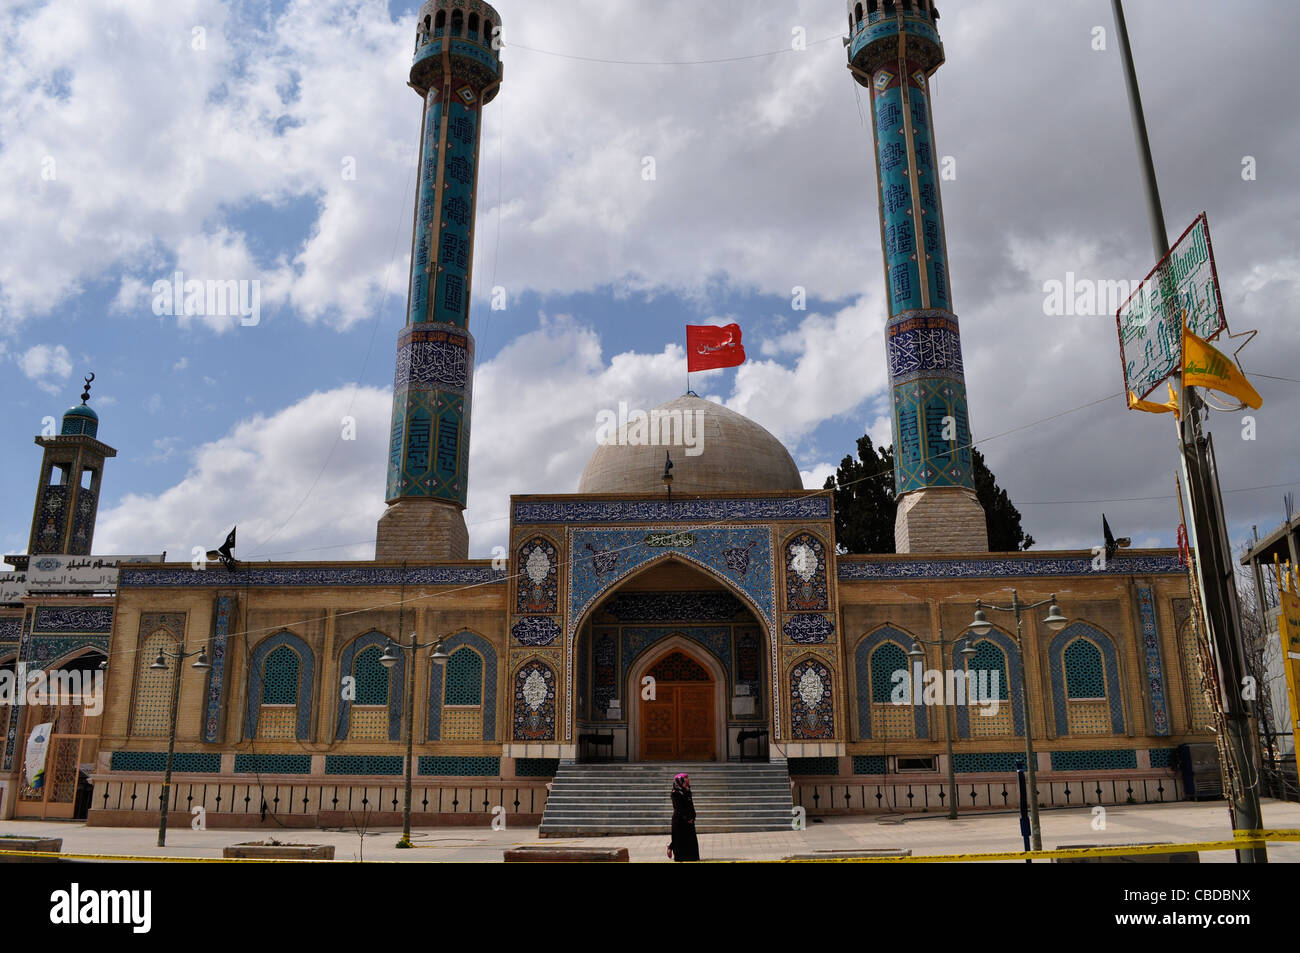 Shi'a mosque, shrine visited by women, daughter of Imam Hussain, Sayeeda Khawla, area controlled by Hezbollah - Stock Image